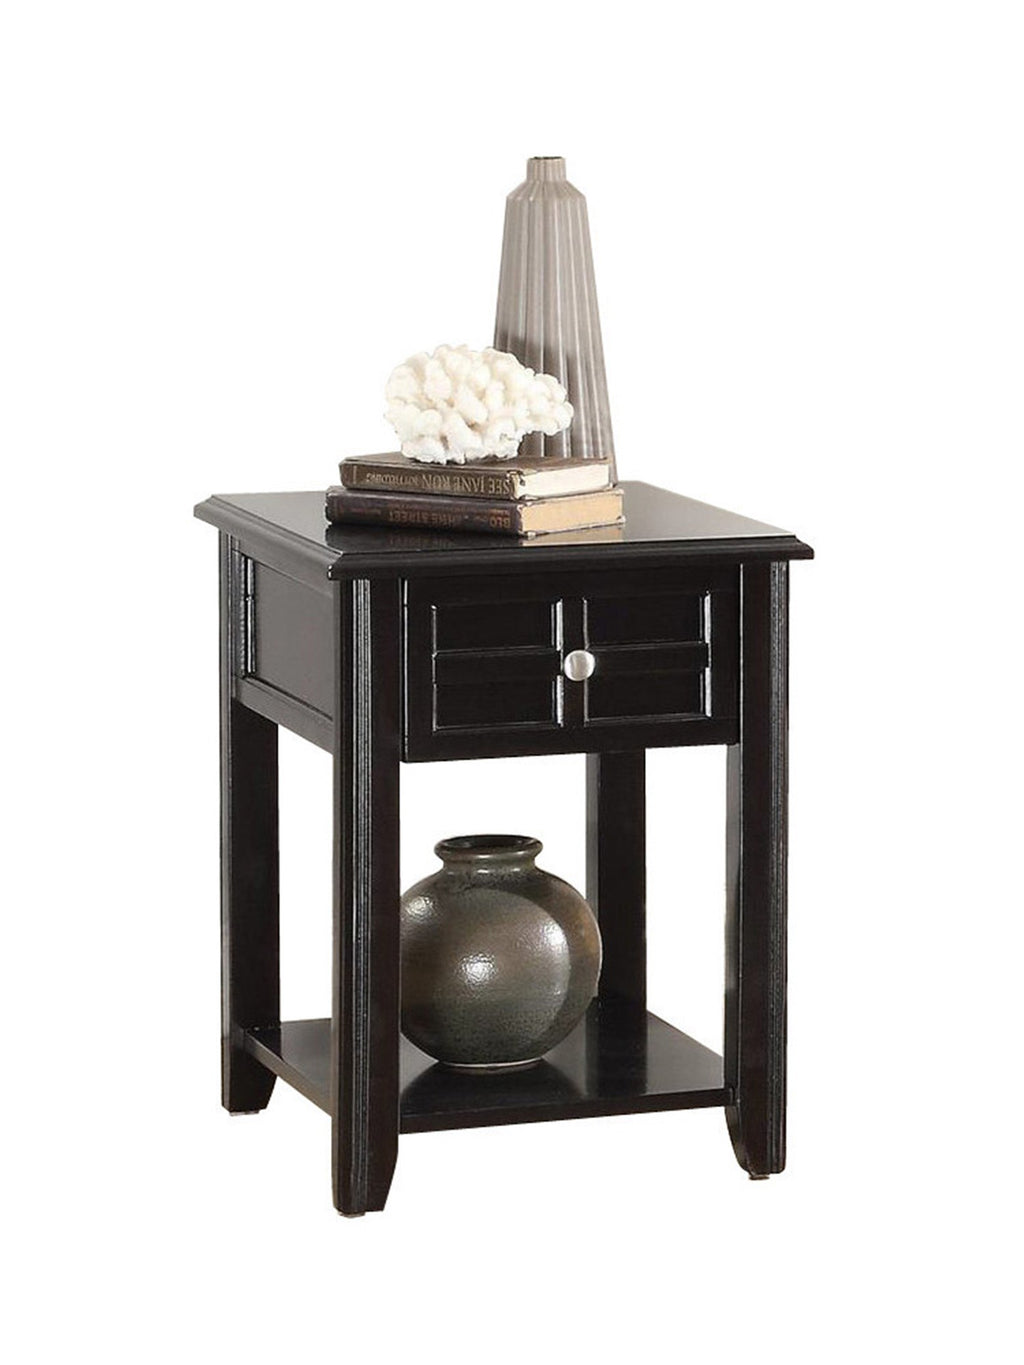 Homelegance Carrier Chair Table with Functional Drawer in Dark Espresso